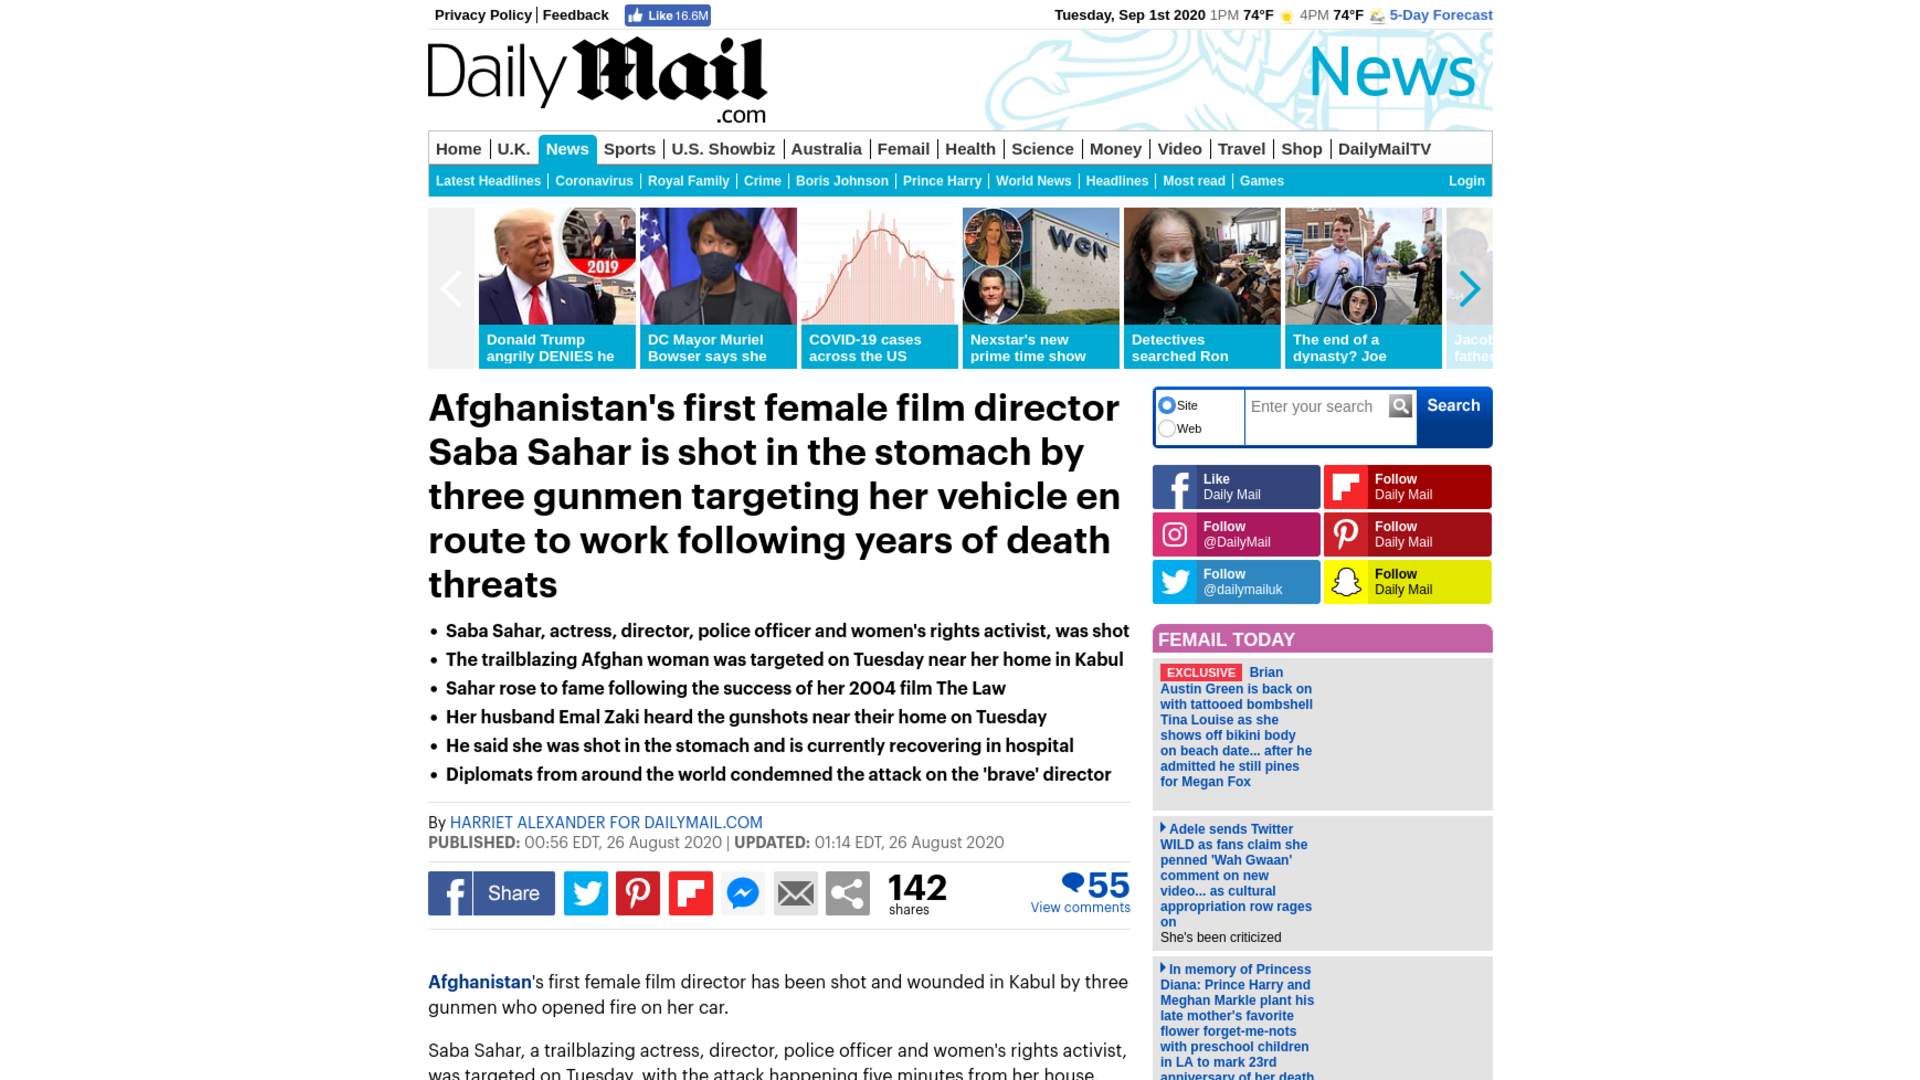 Fairness Rocks News Afghanistan's first female film director Saba Sahar is shot in the stomach by three gunmen targeting her vehicle en route to work following years of death threats